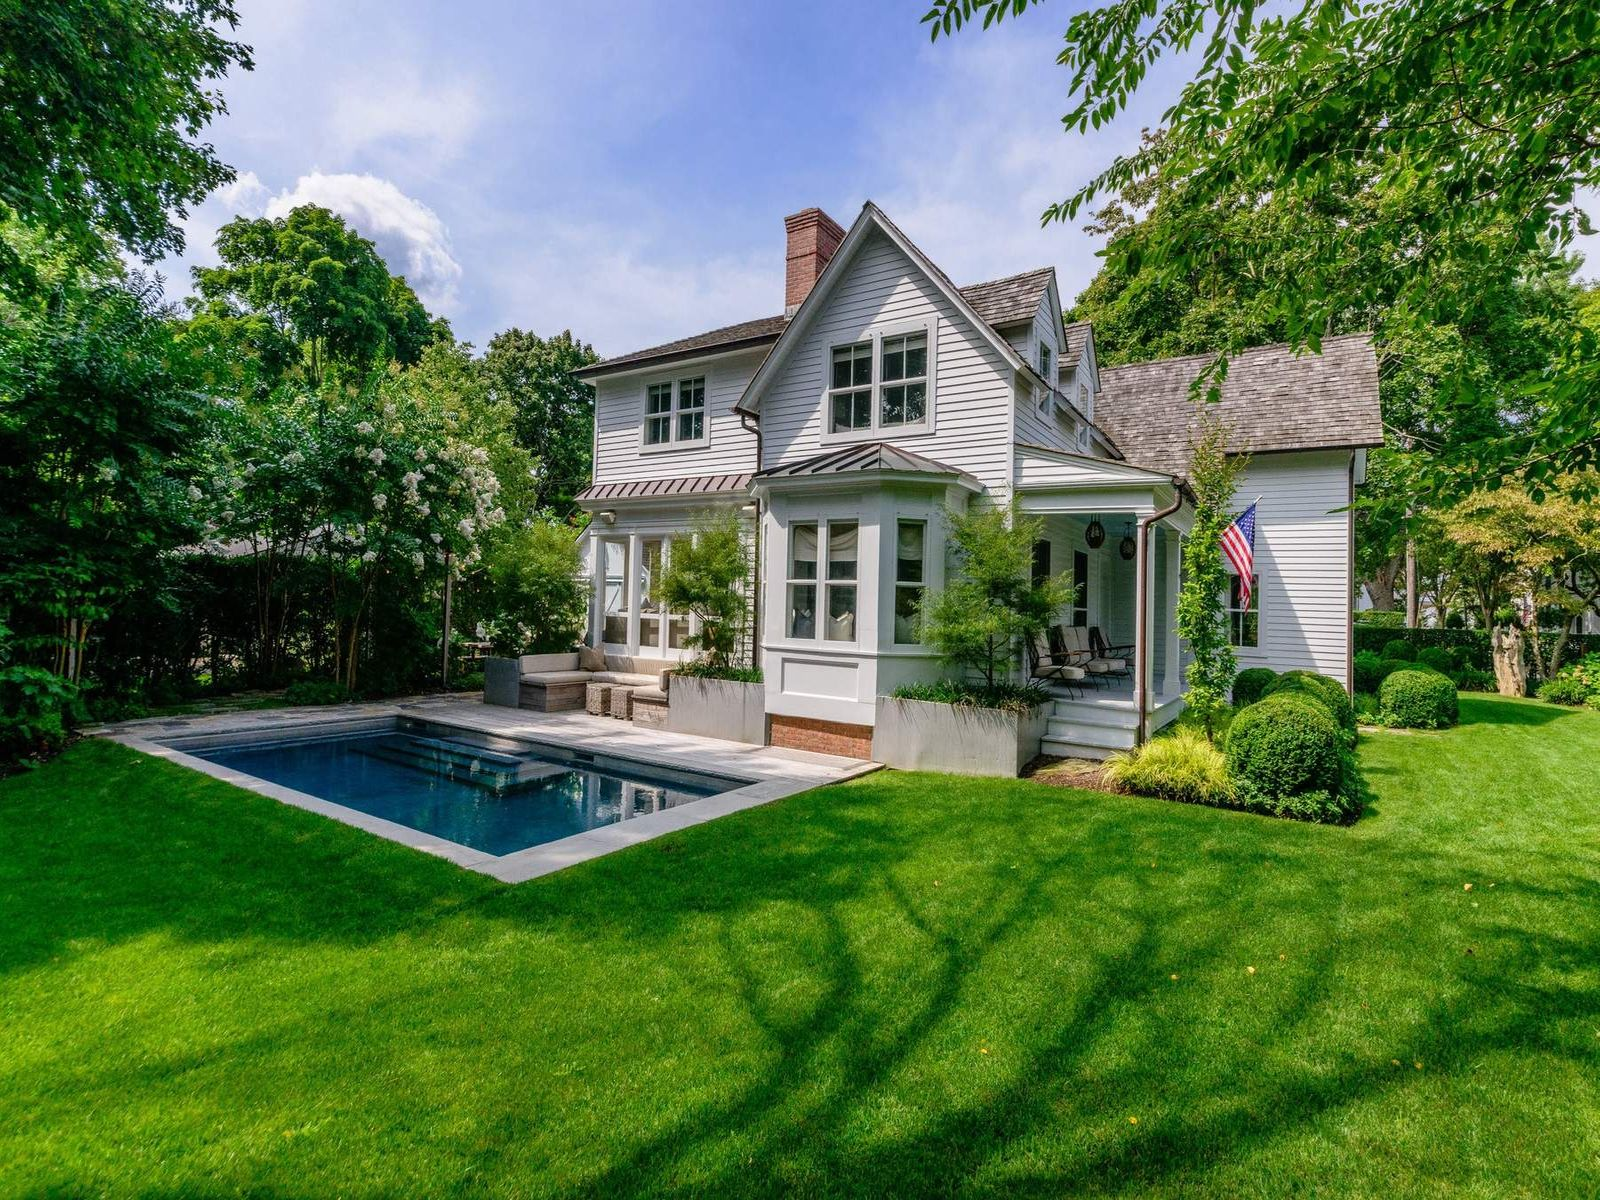 Sag Harbor Village, John Street Beauty, Sag Harbor NY Single Family Home - Hamptons Real Estate